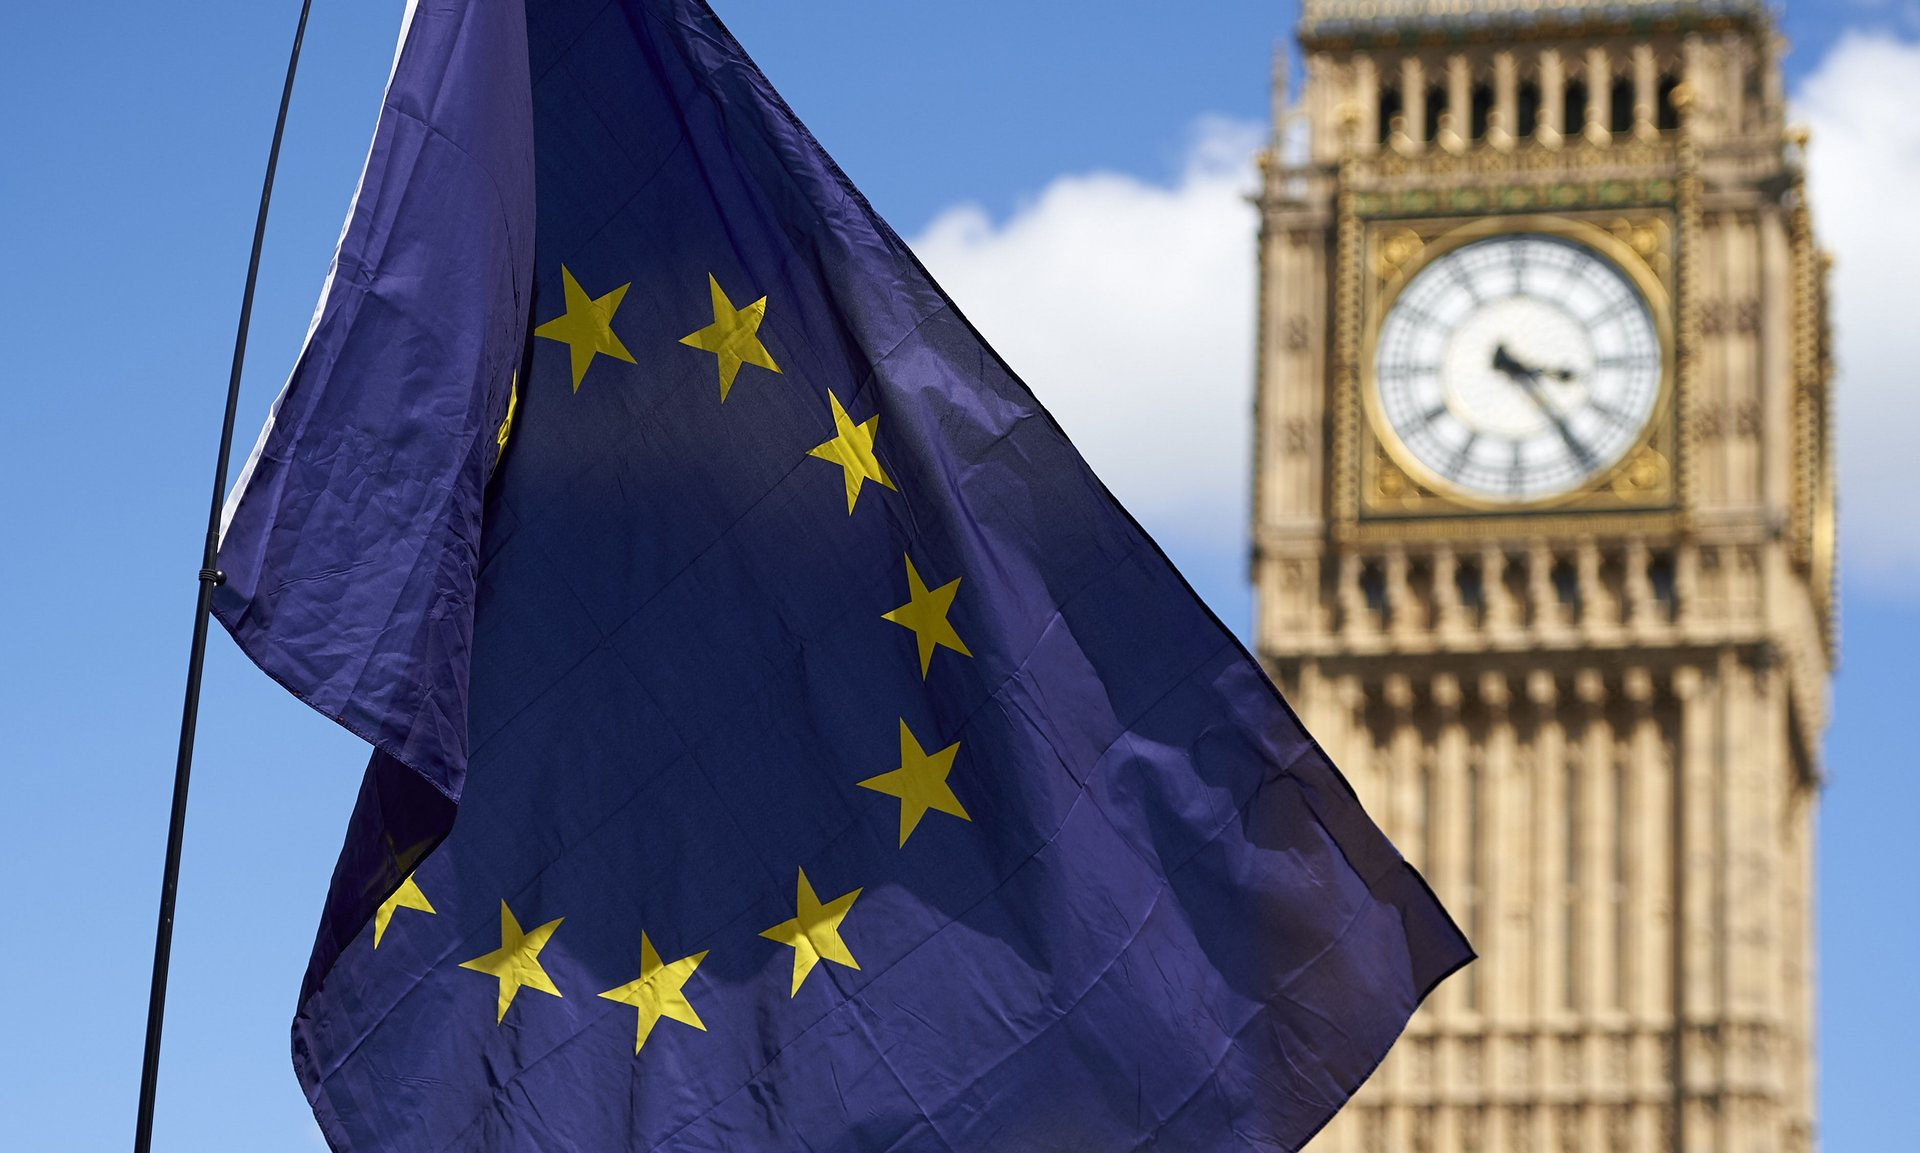 Experts say exiting the EU could stifle the UK's open data prospects Photograph: Niklas Halle'N/AFP/Getty Images